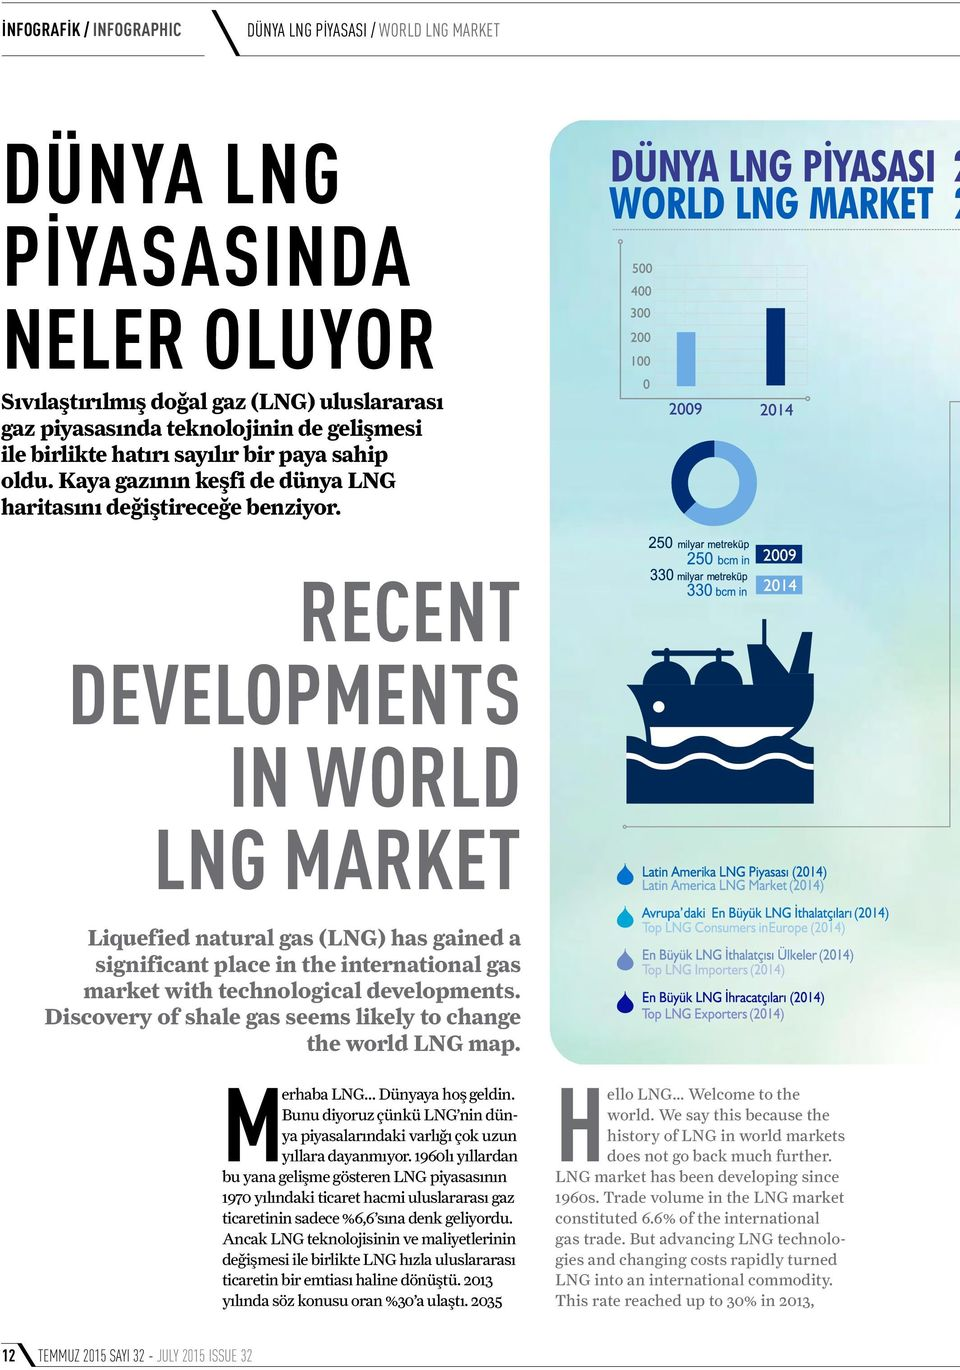 RECENT DEVELOPMENTS IN WORLD LNG MARKET Liquefied natural gas (LNG) has gained a significant place in the international gas market with technological developments.